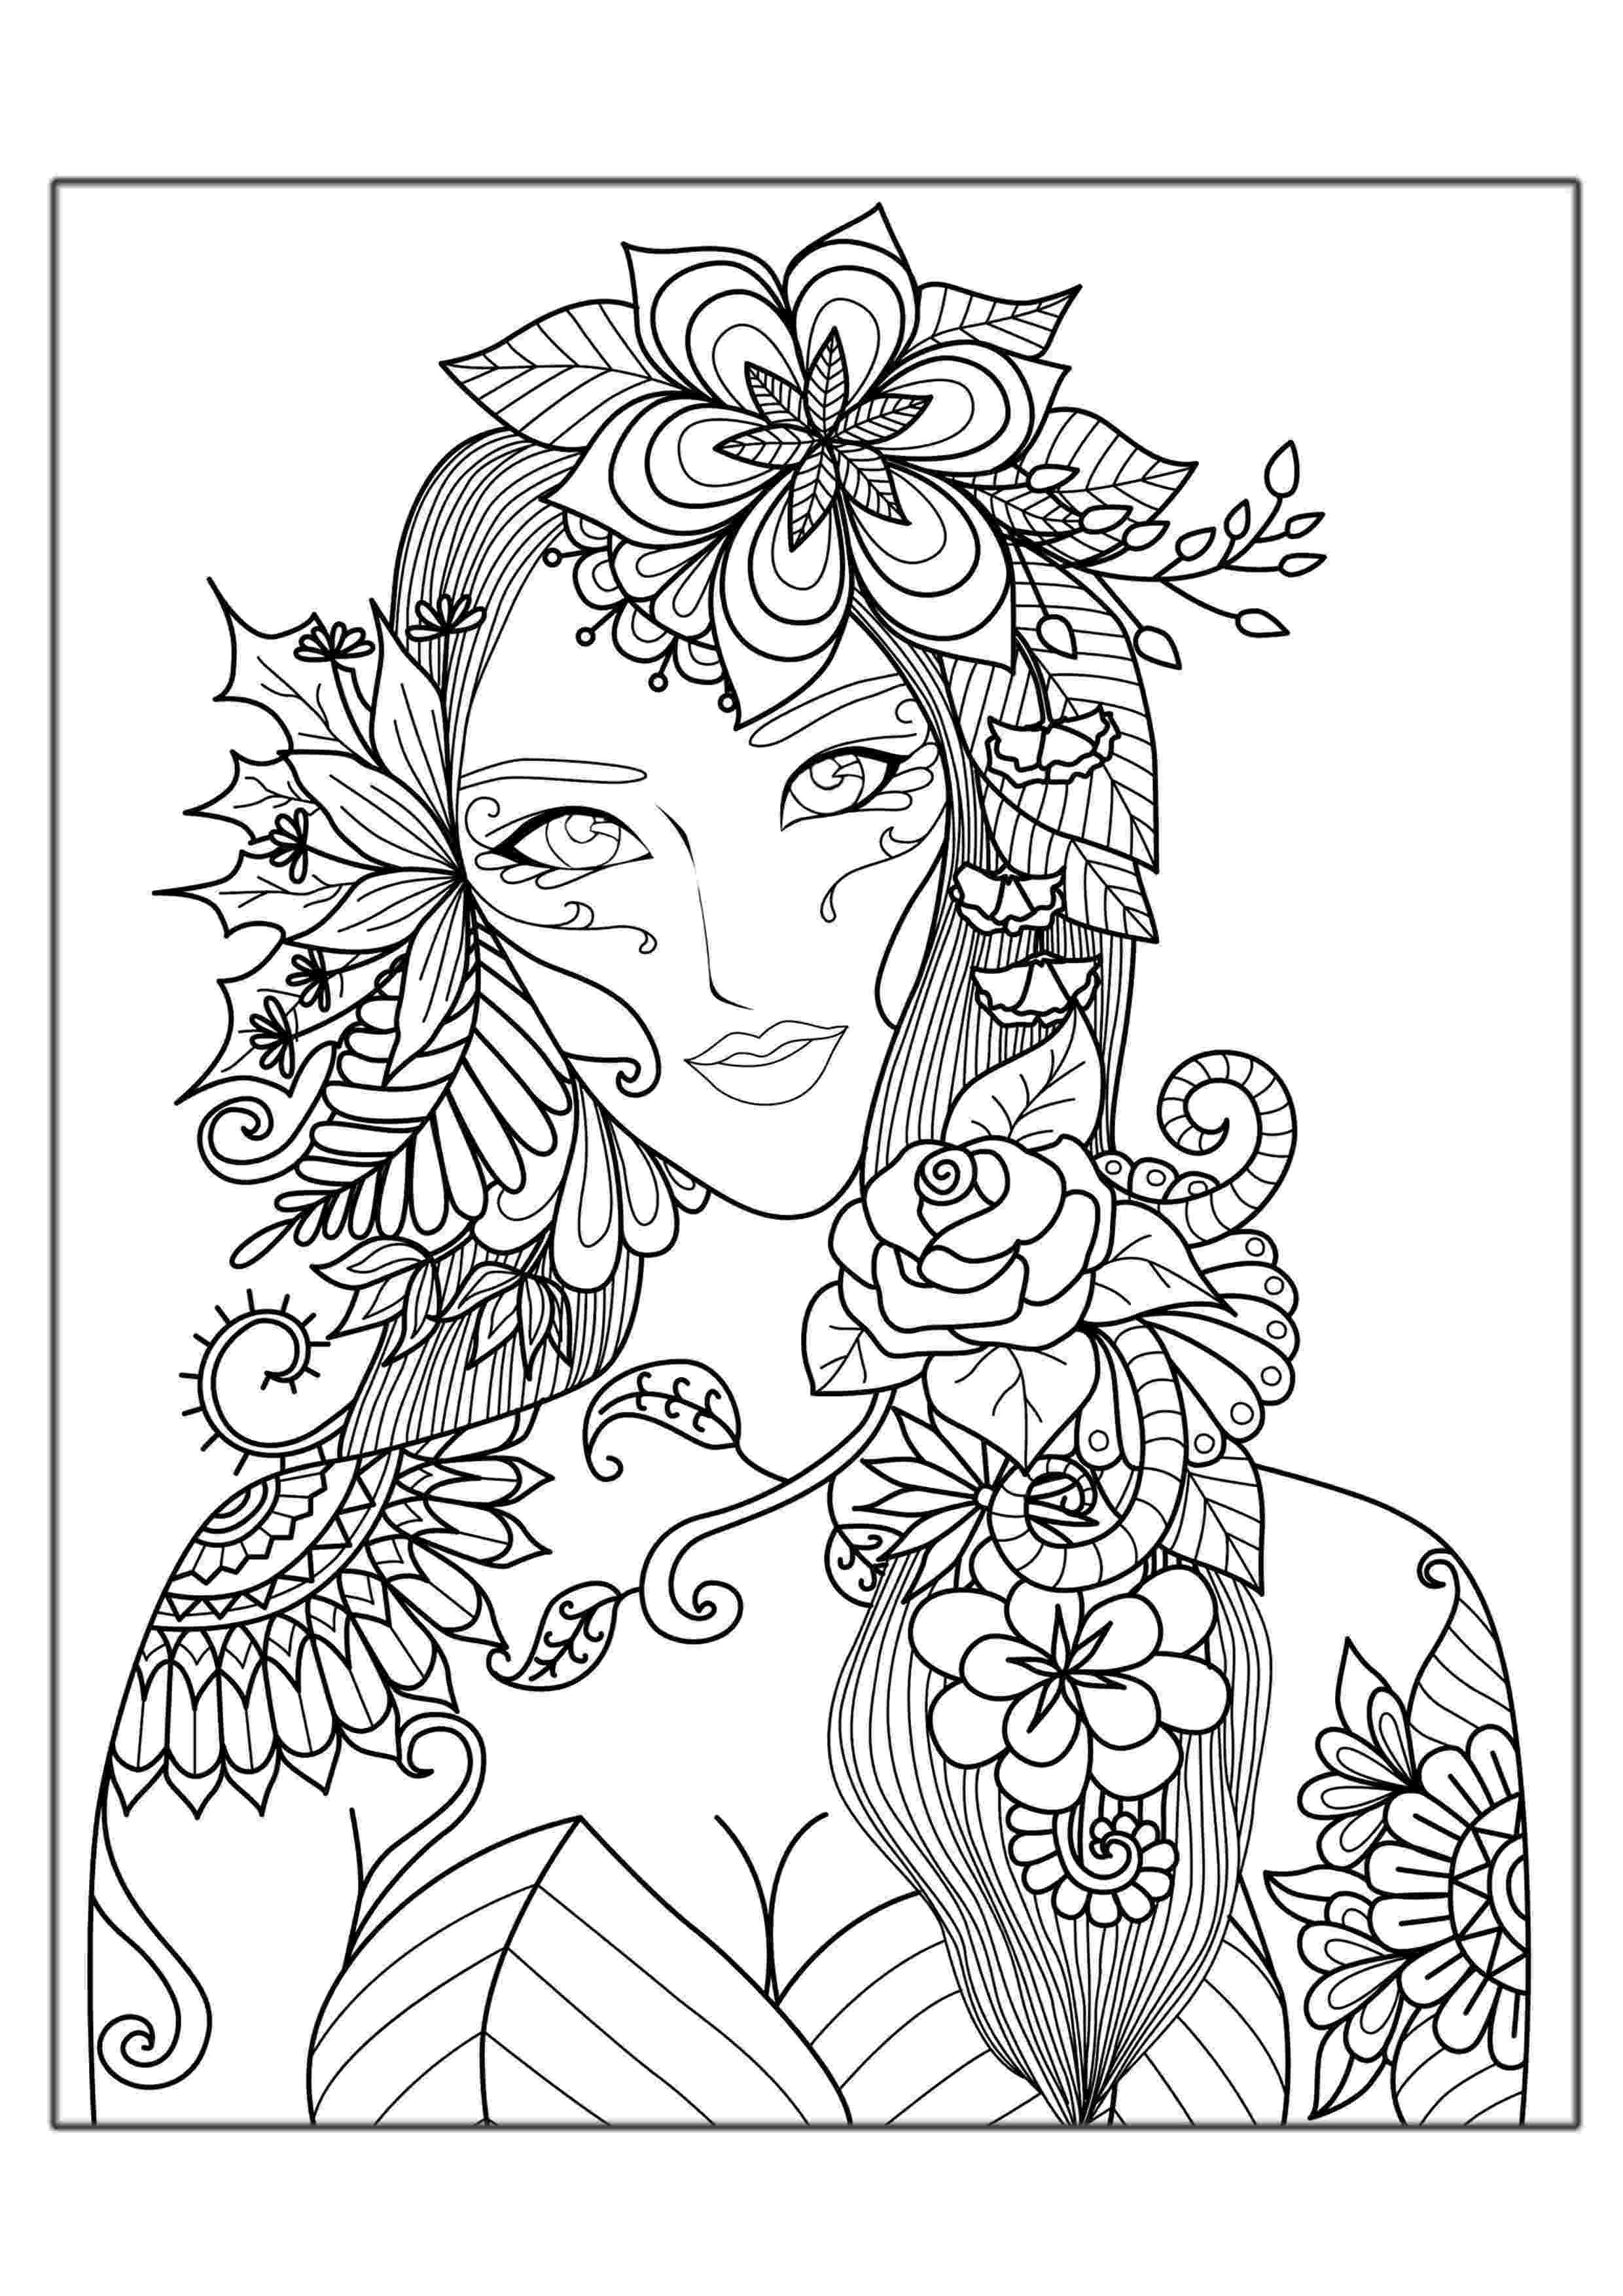 printable difficult coloring pages printable dog coloring pages that are hard yahoo image difficult coloring printable pages